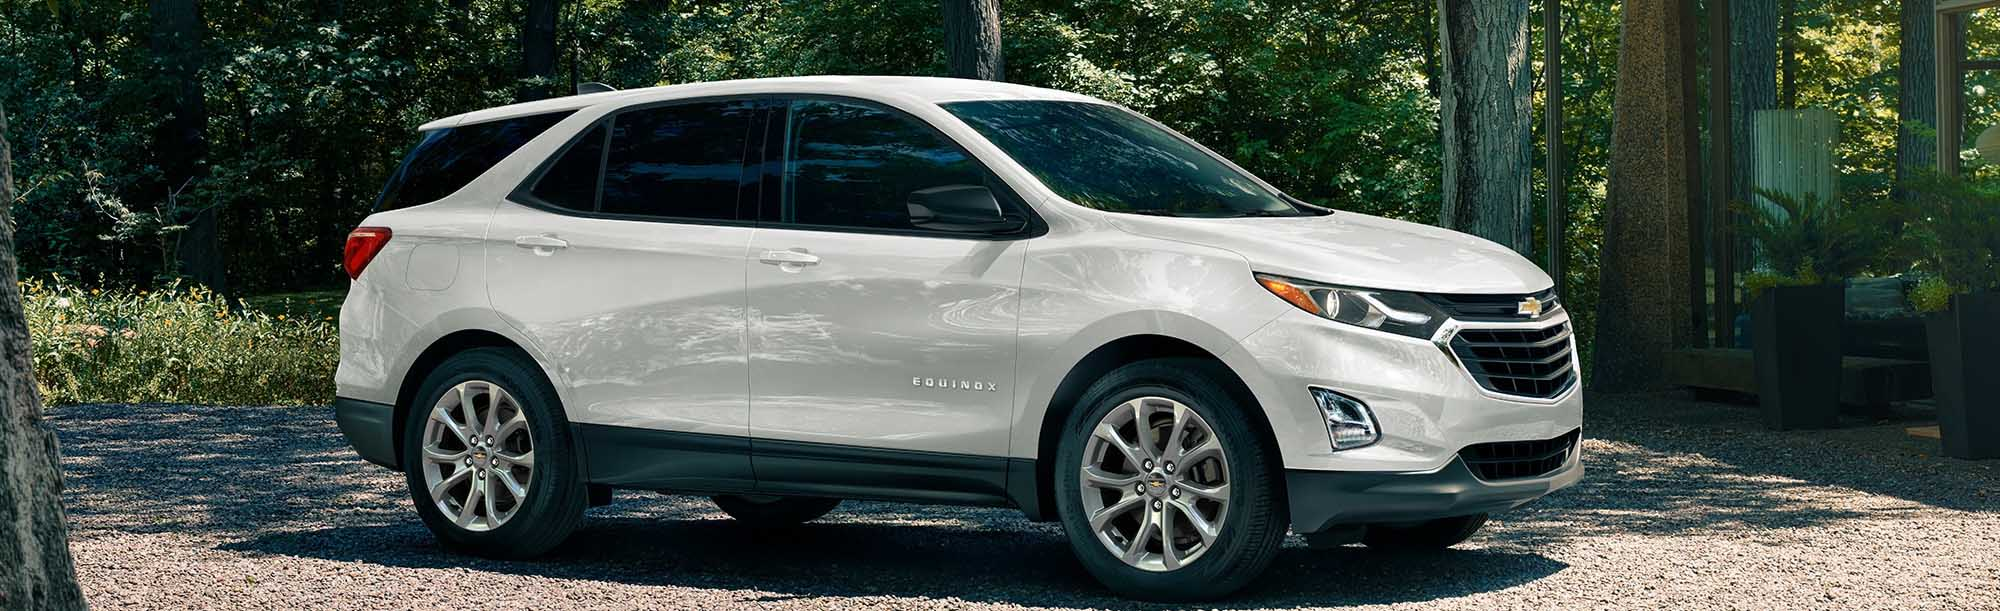 Discover The 2020 Chevy Equinox SUV At Our Costa Mesa, CA, Auto Dealer